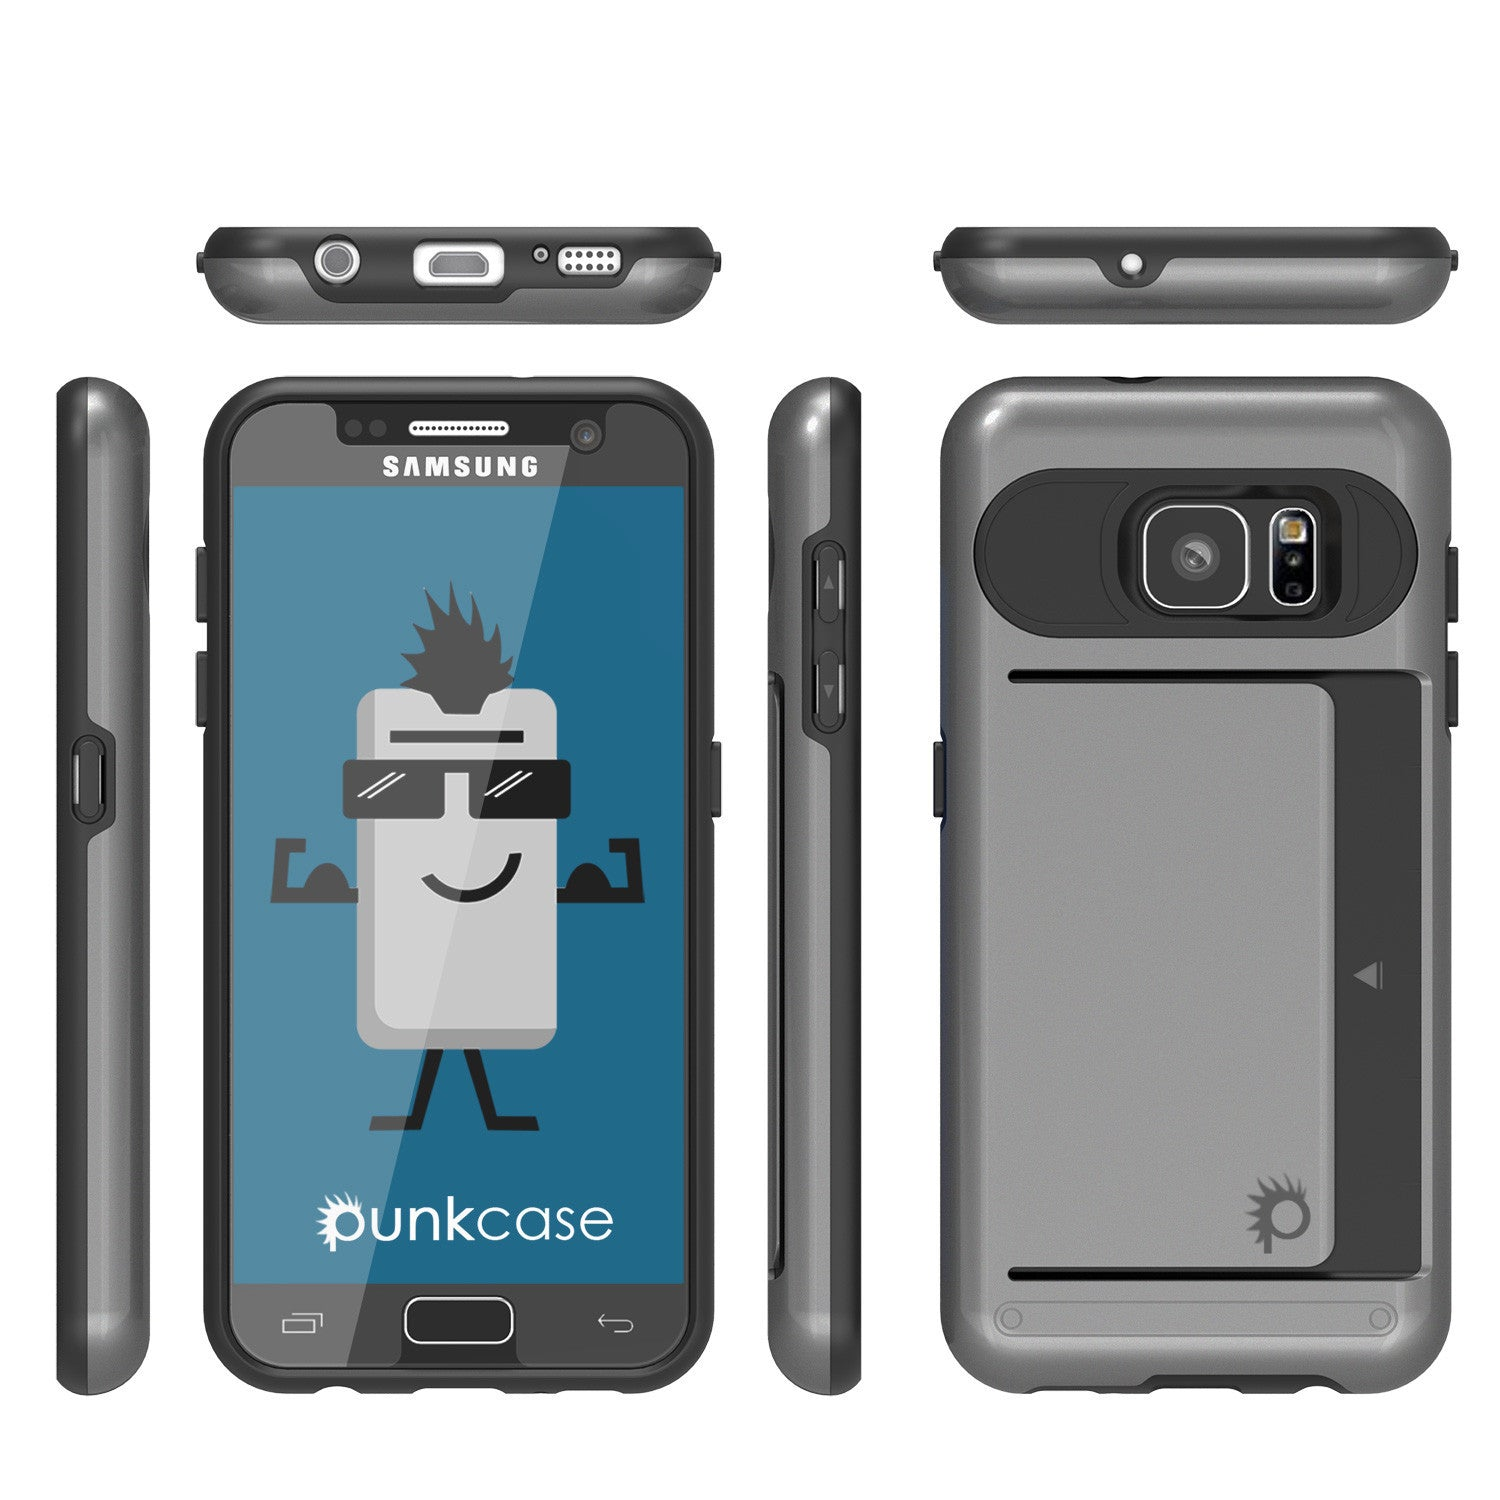 Galaxy S7 EDGE Case PunkCase CLUTCH Grey Series Slim Armor Soft Cover Case w/ Screen Protector